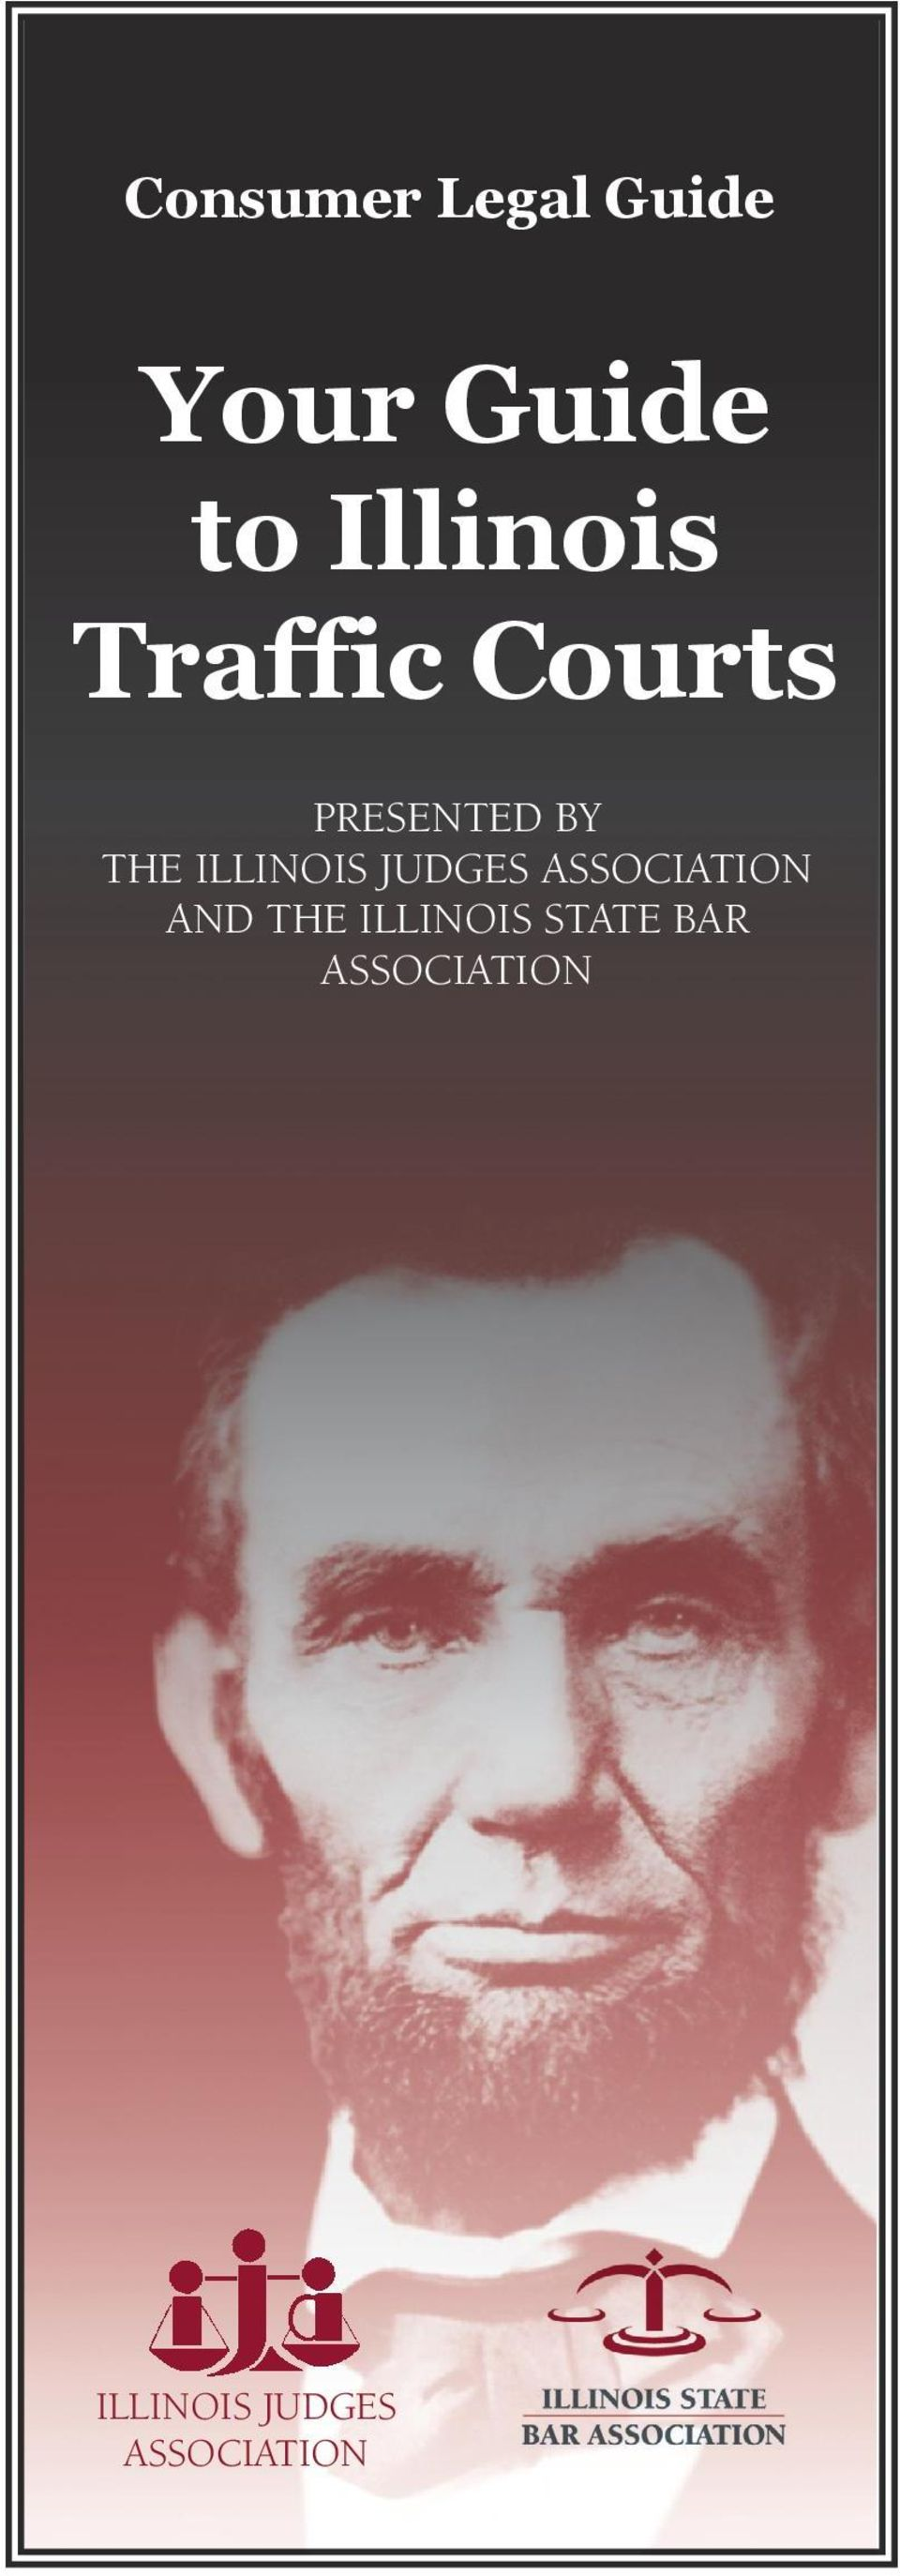 Illinois Judges Association and the